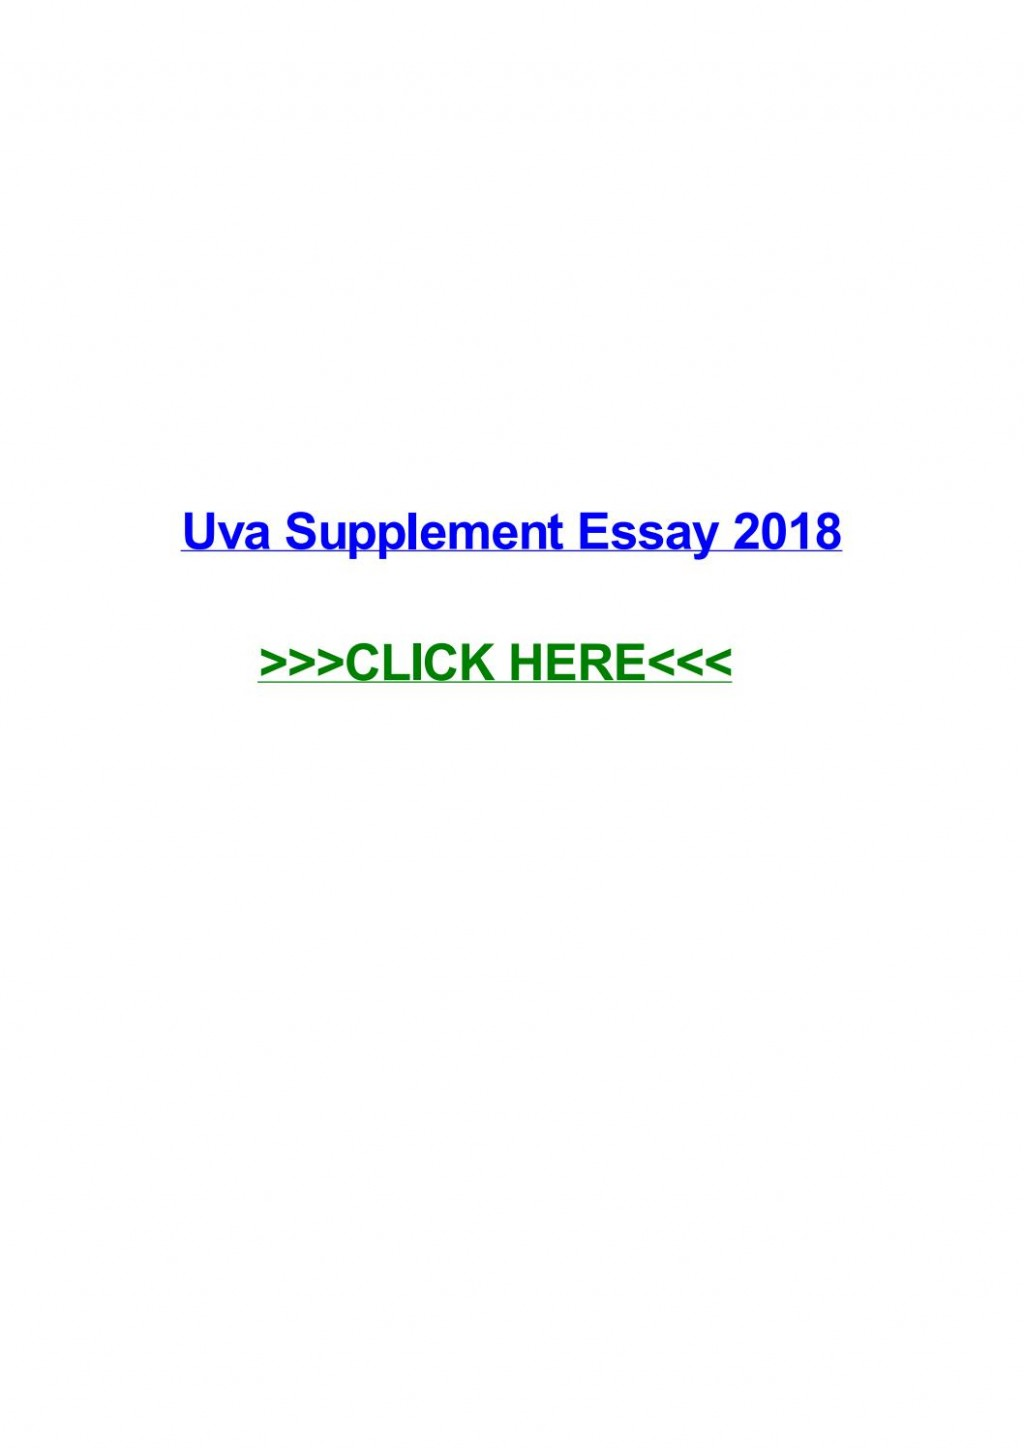 006 Page 1 Essay Example Uva Rare Supplement Tips 2017 2016 Large